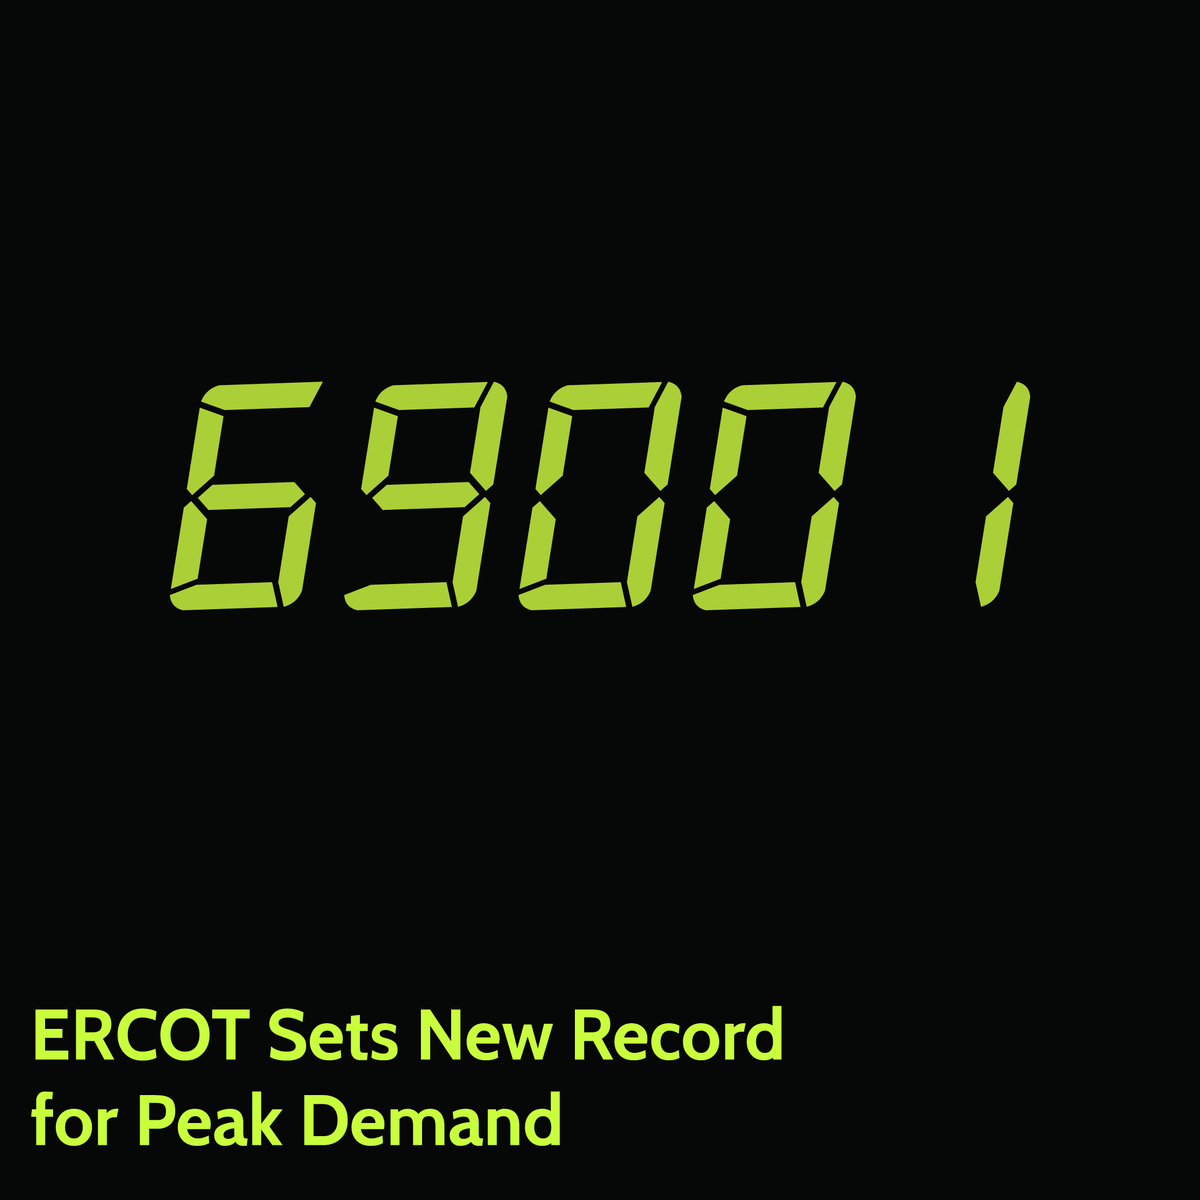 For the first time ever, #ERCOT system breaks 69,000 MW in hourly peak demand. http://t.co/J3ApQD8ulG http://t.co/H6YjWB1AFk